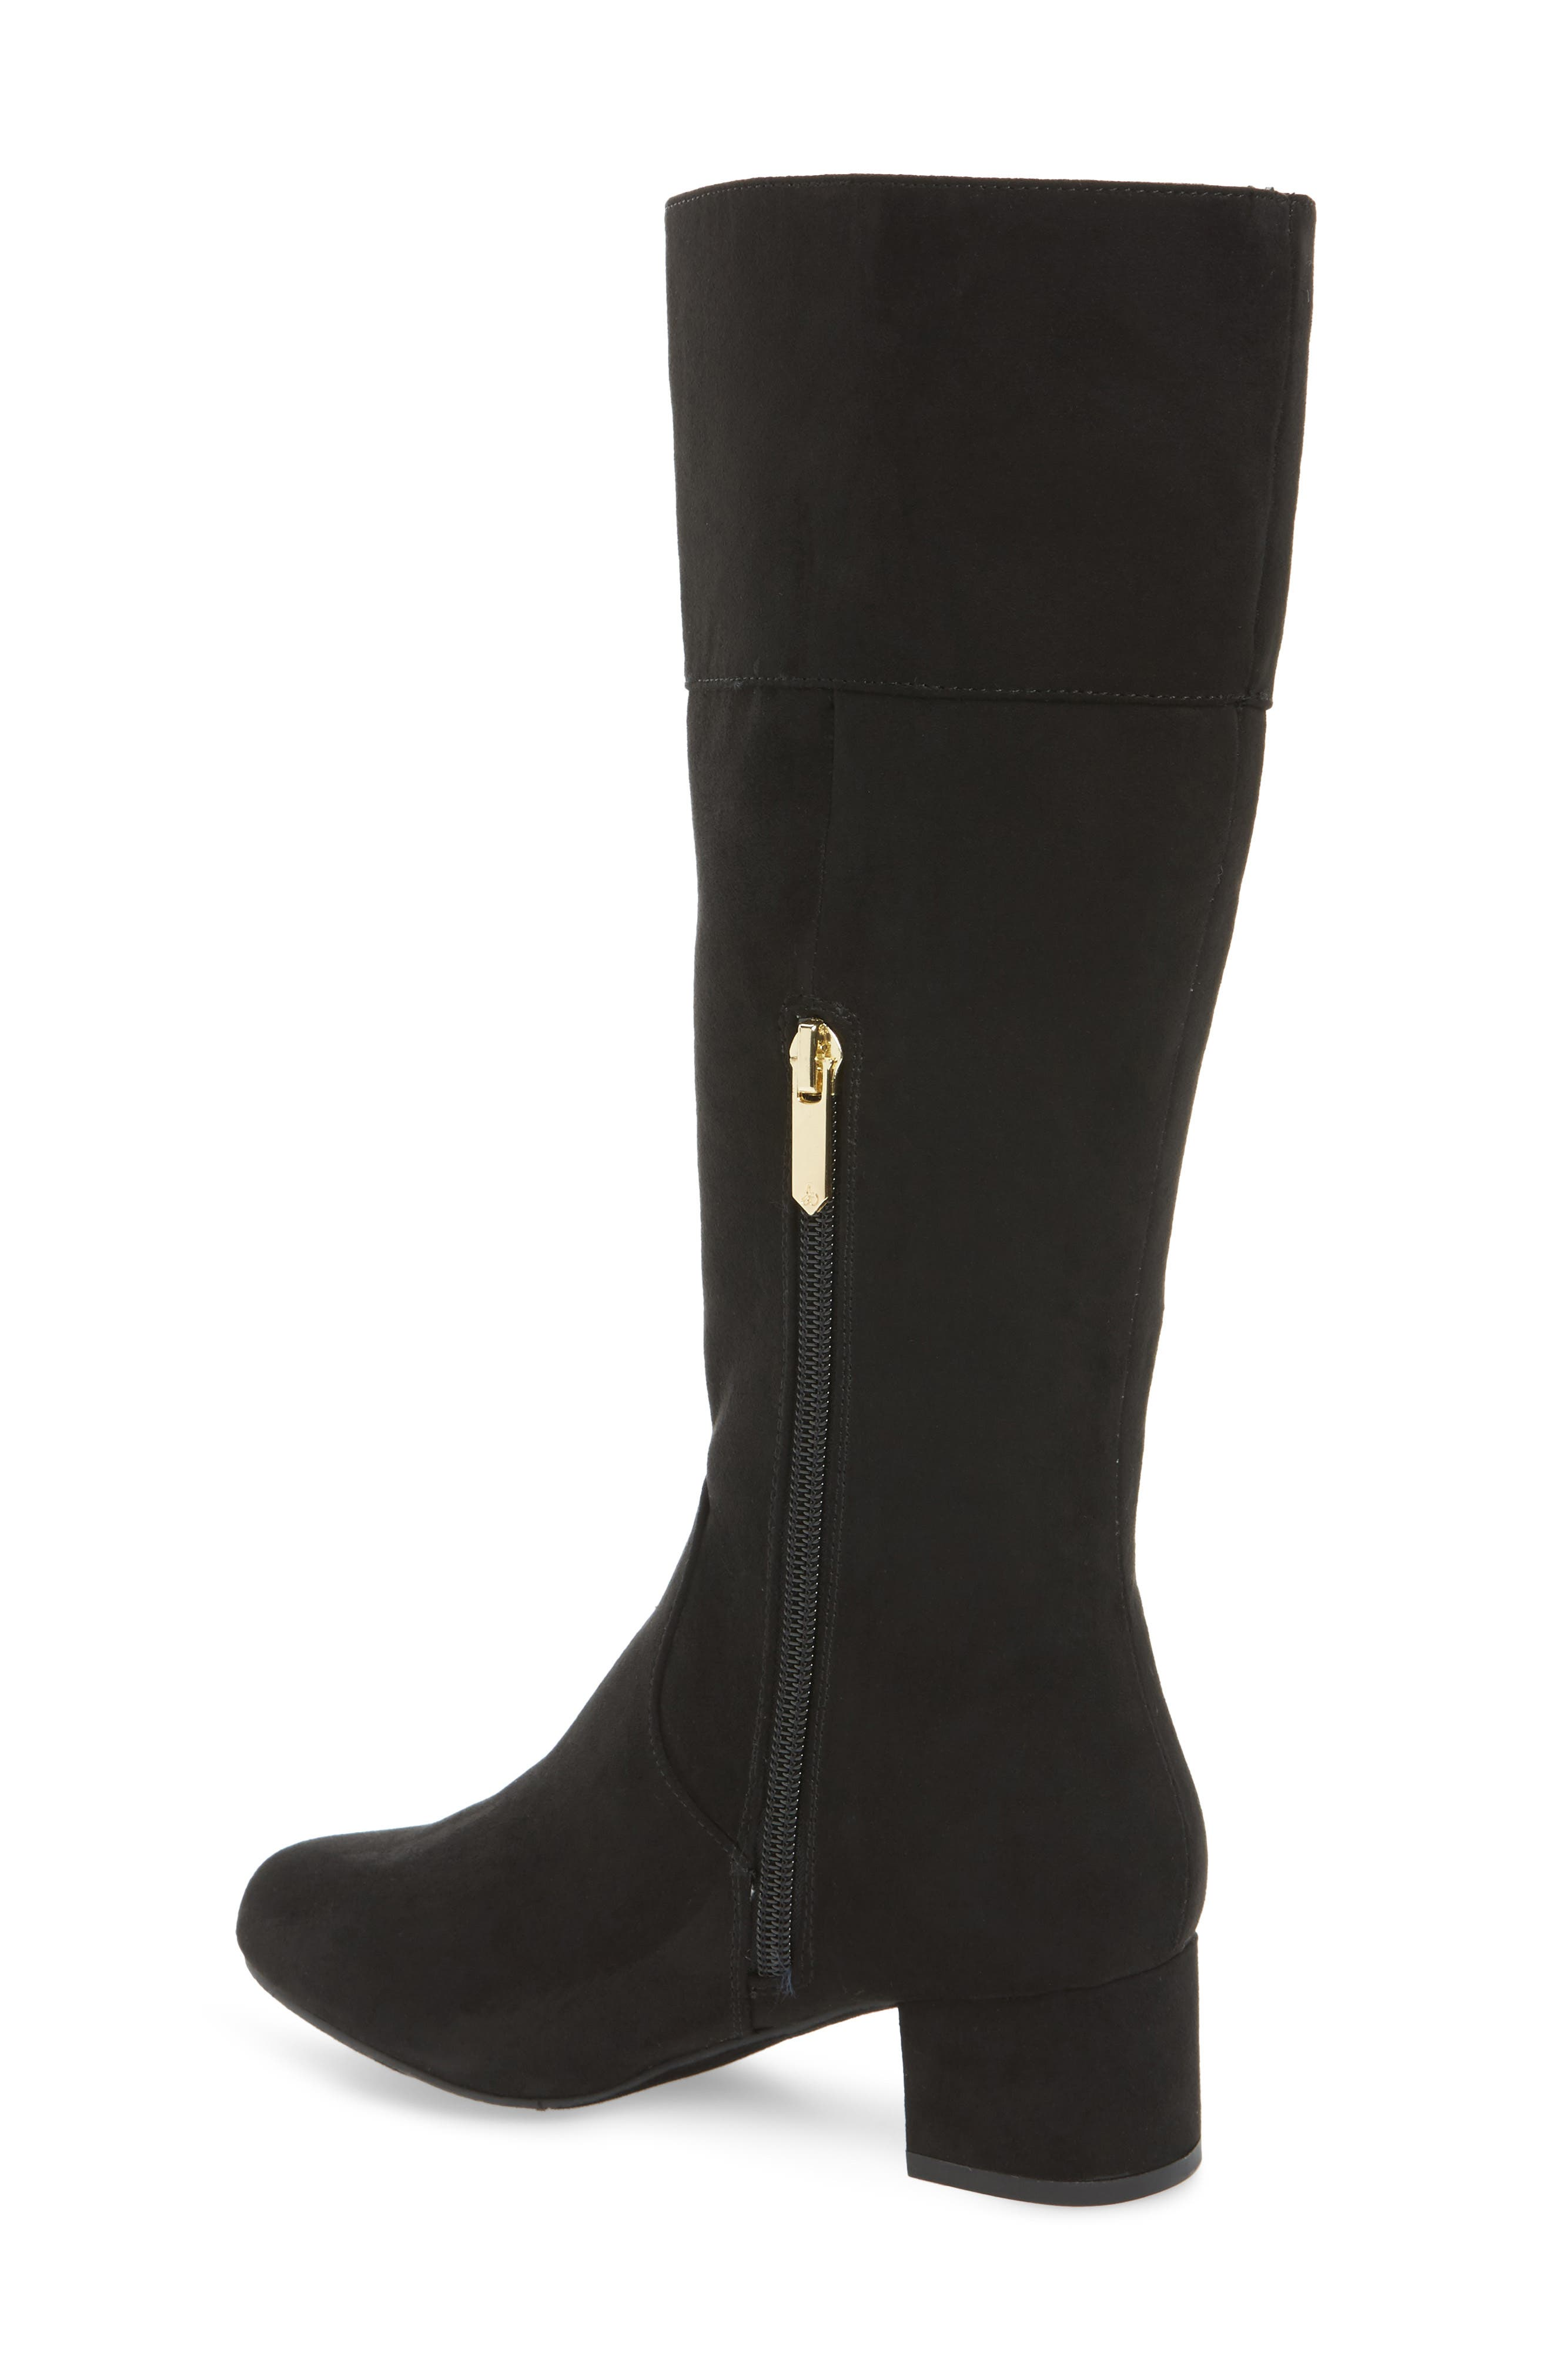 Tate Sydney Tall Boot,                             Alternate thumbnail 2, color,                             001